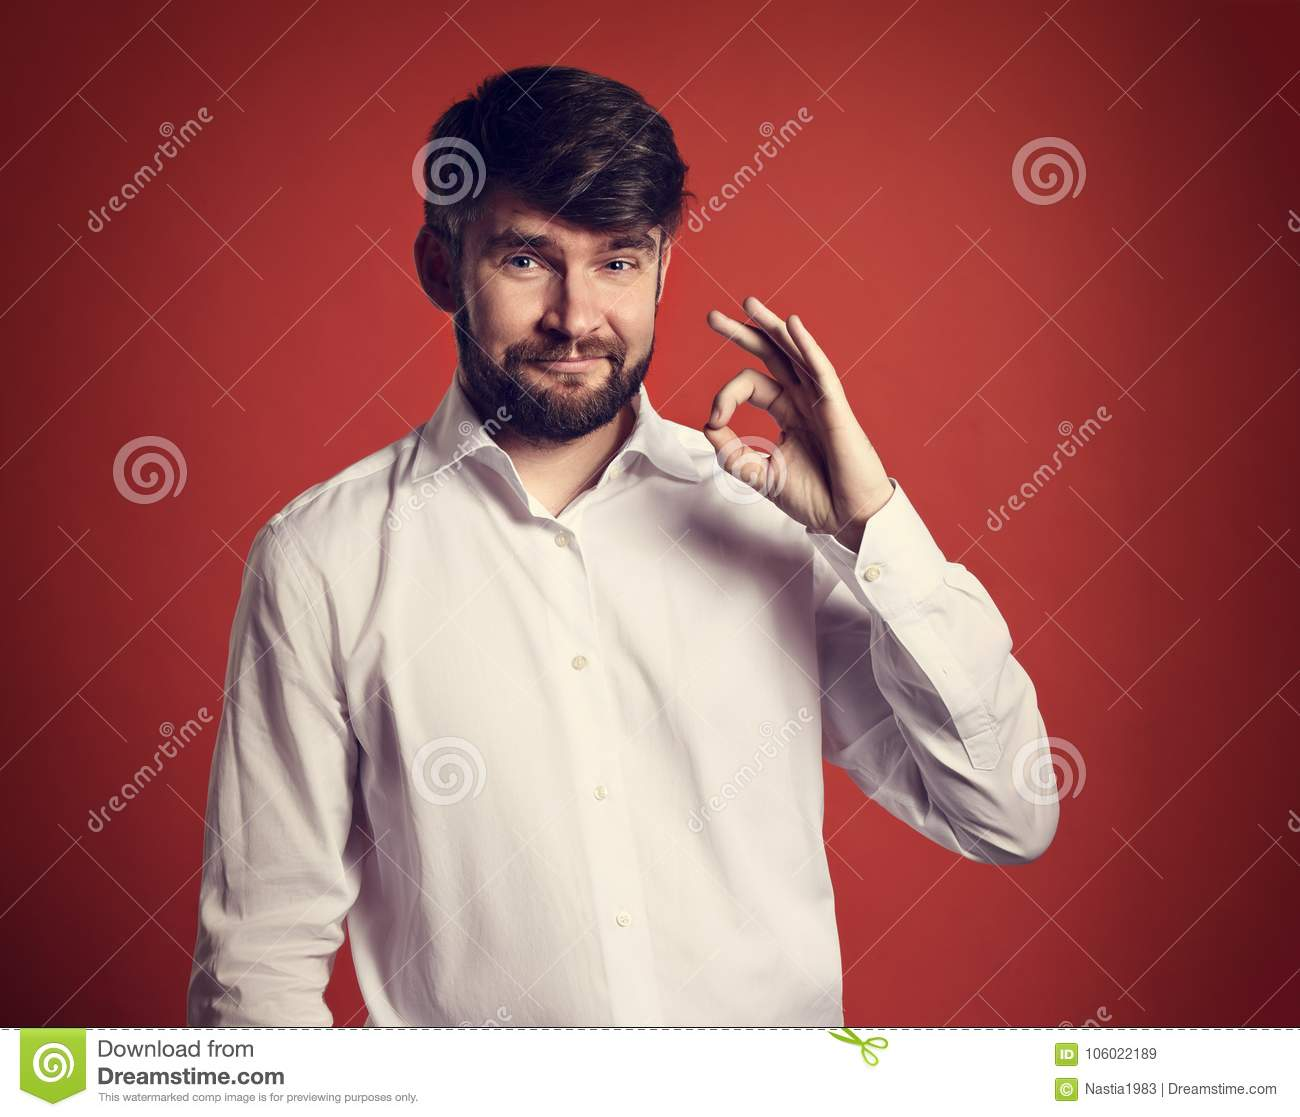 72823c4c2c68 Happy bearded smiling business man showing okay sign in fashion white style  shirt on red background. Closeup toned portrait